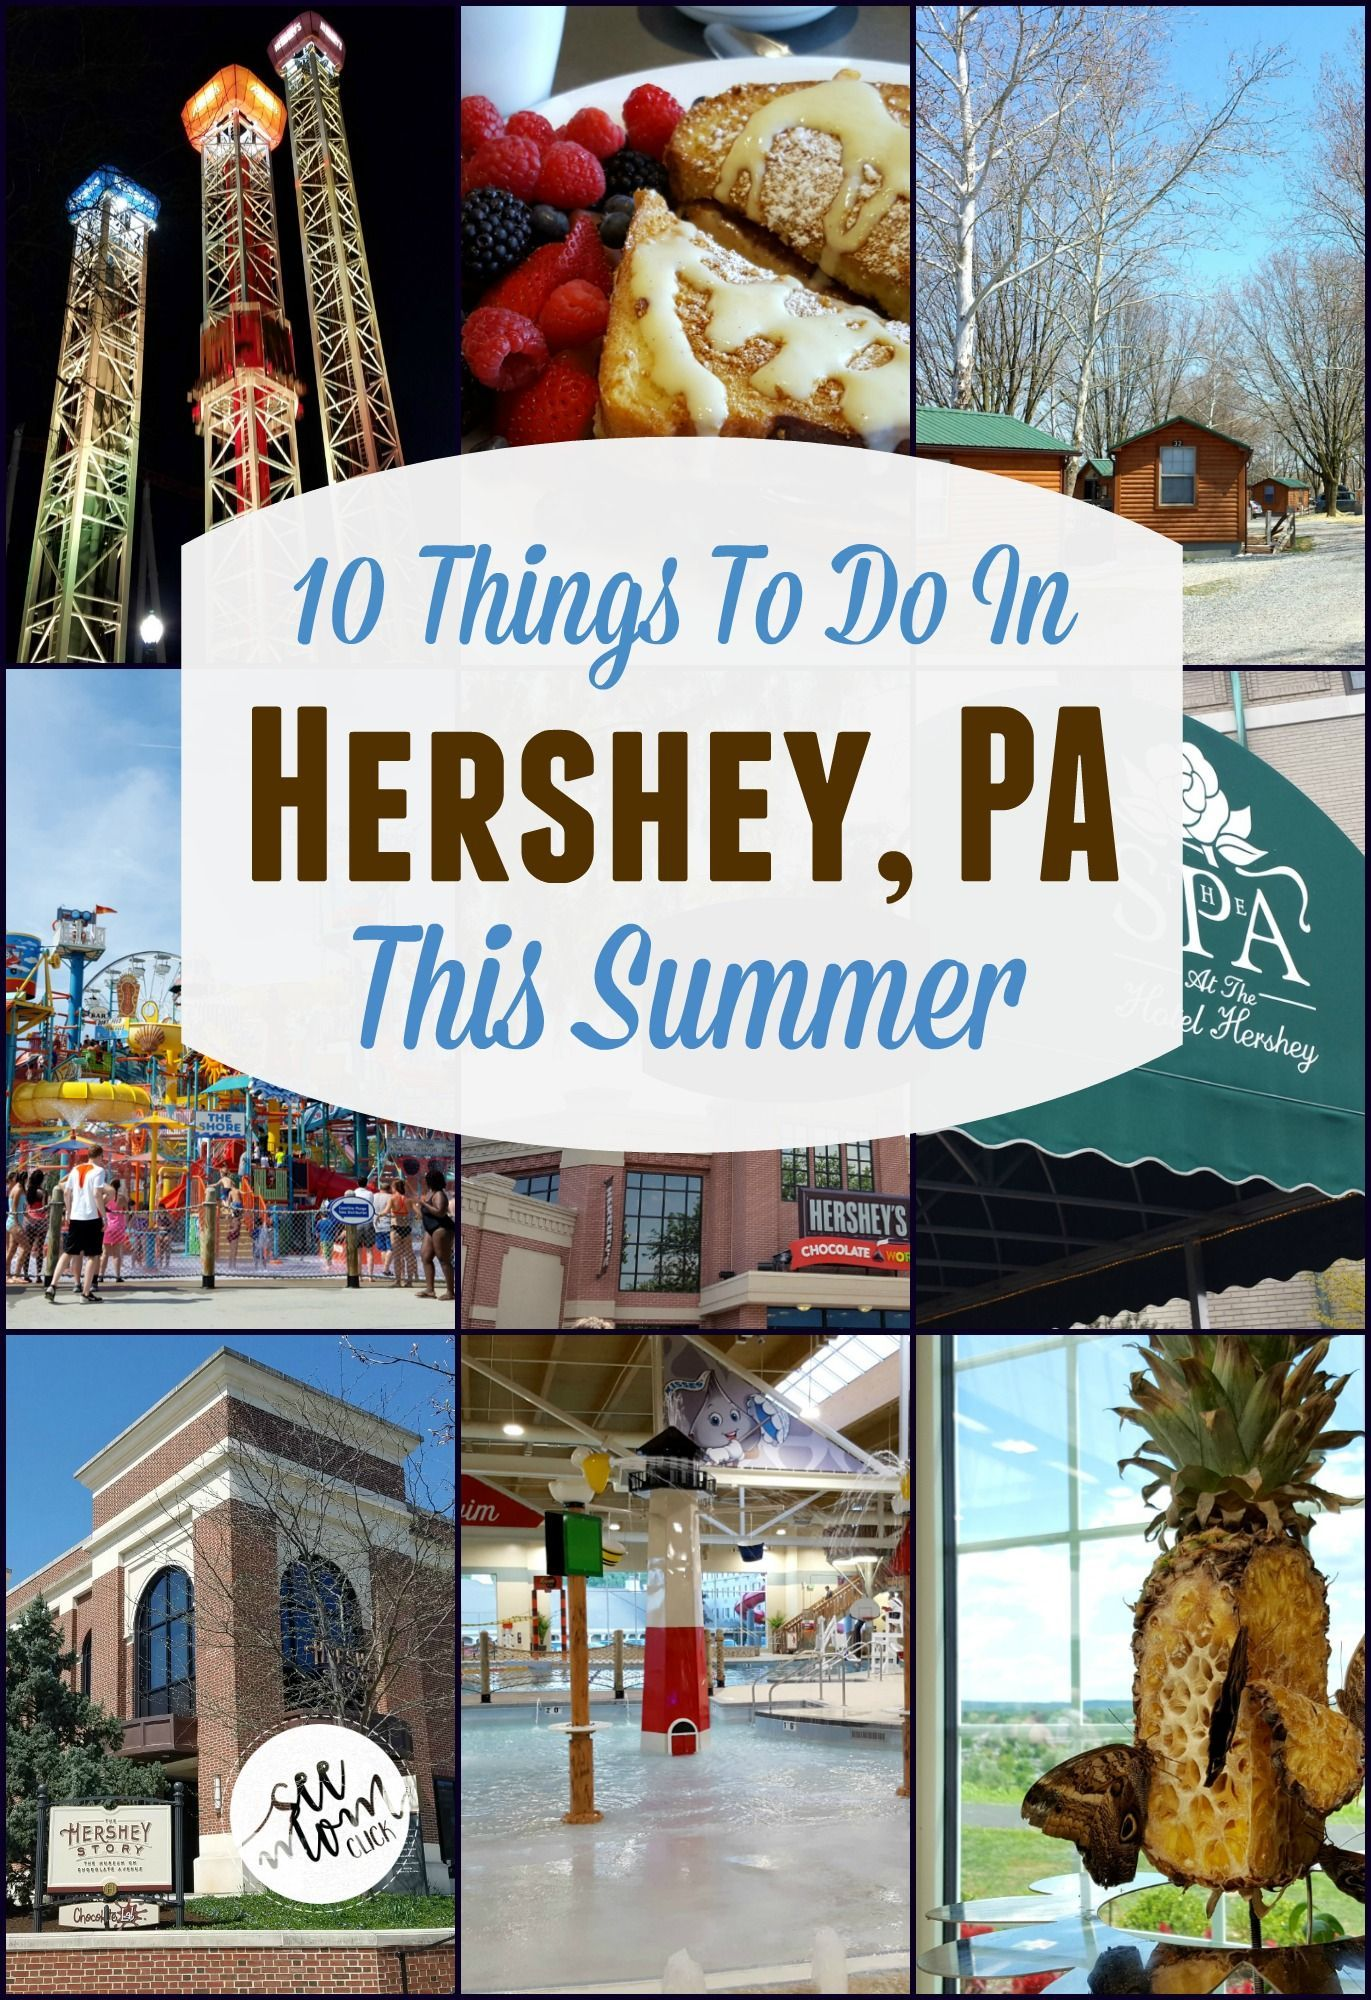 Hershey is THE place to be for family fun! We visit often and Im sharing my top 10 things to do in Hershey PA this summer! #style #shopping #styles #outfit #pretty #girl #girls #beauty #beautiful #me #cute #stylish #photooftheday #swag #dress #shoes #diy #design #fashion #Travel